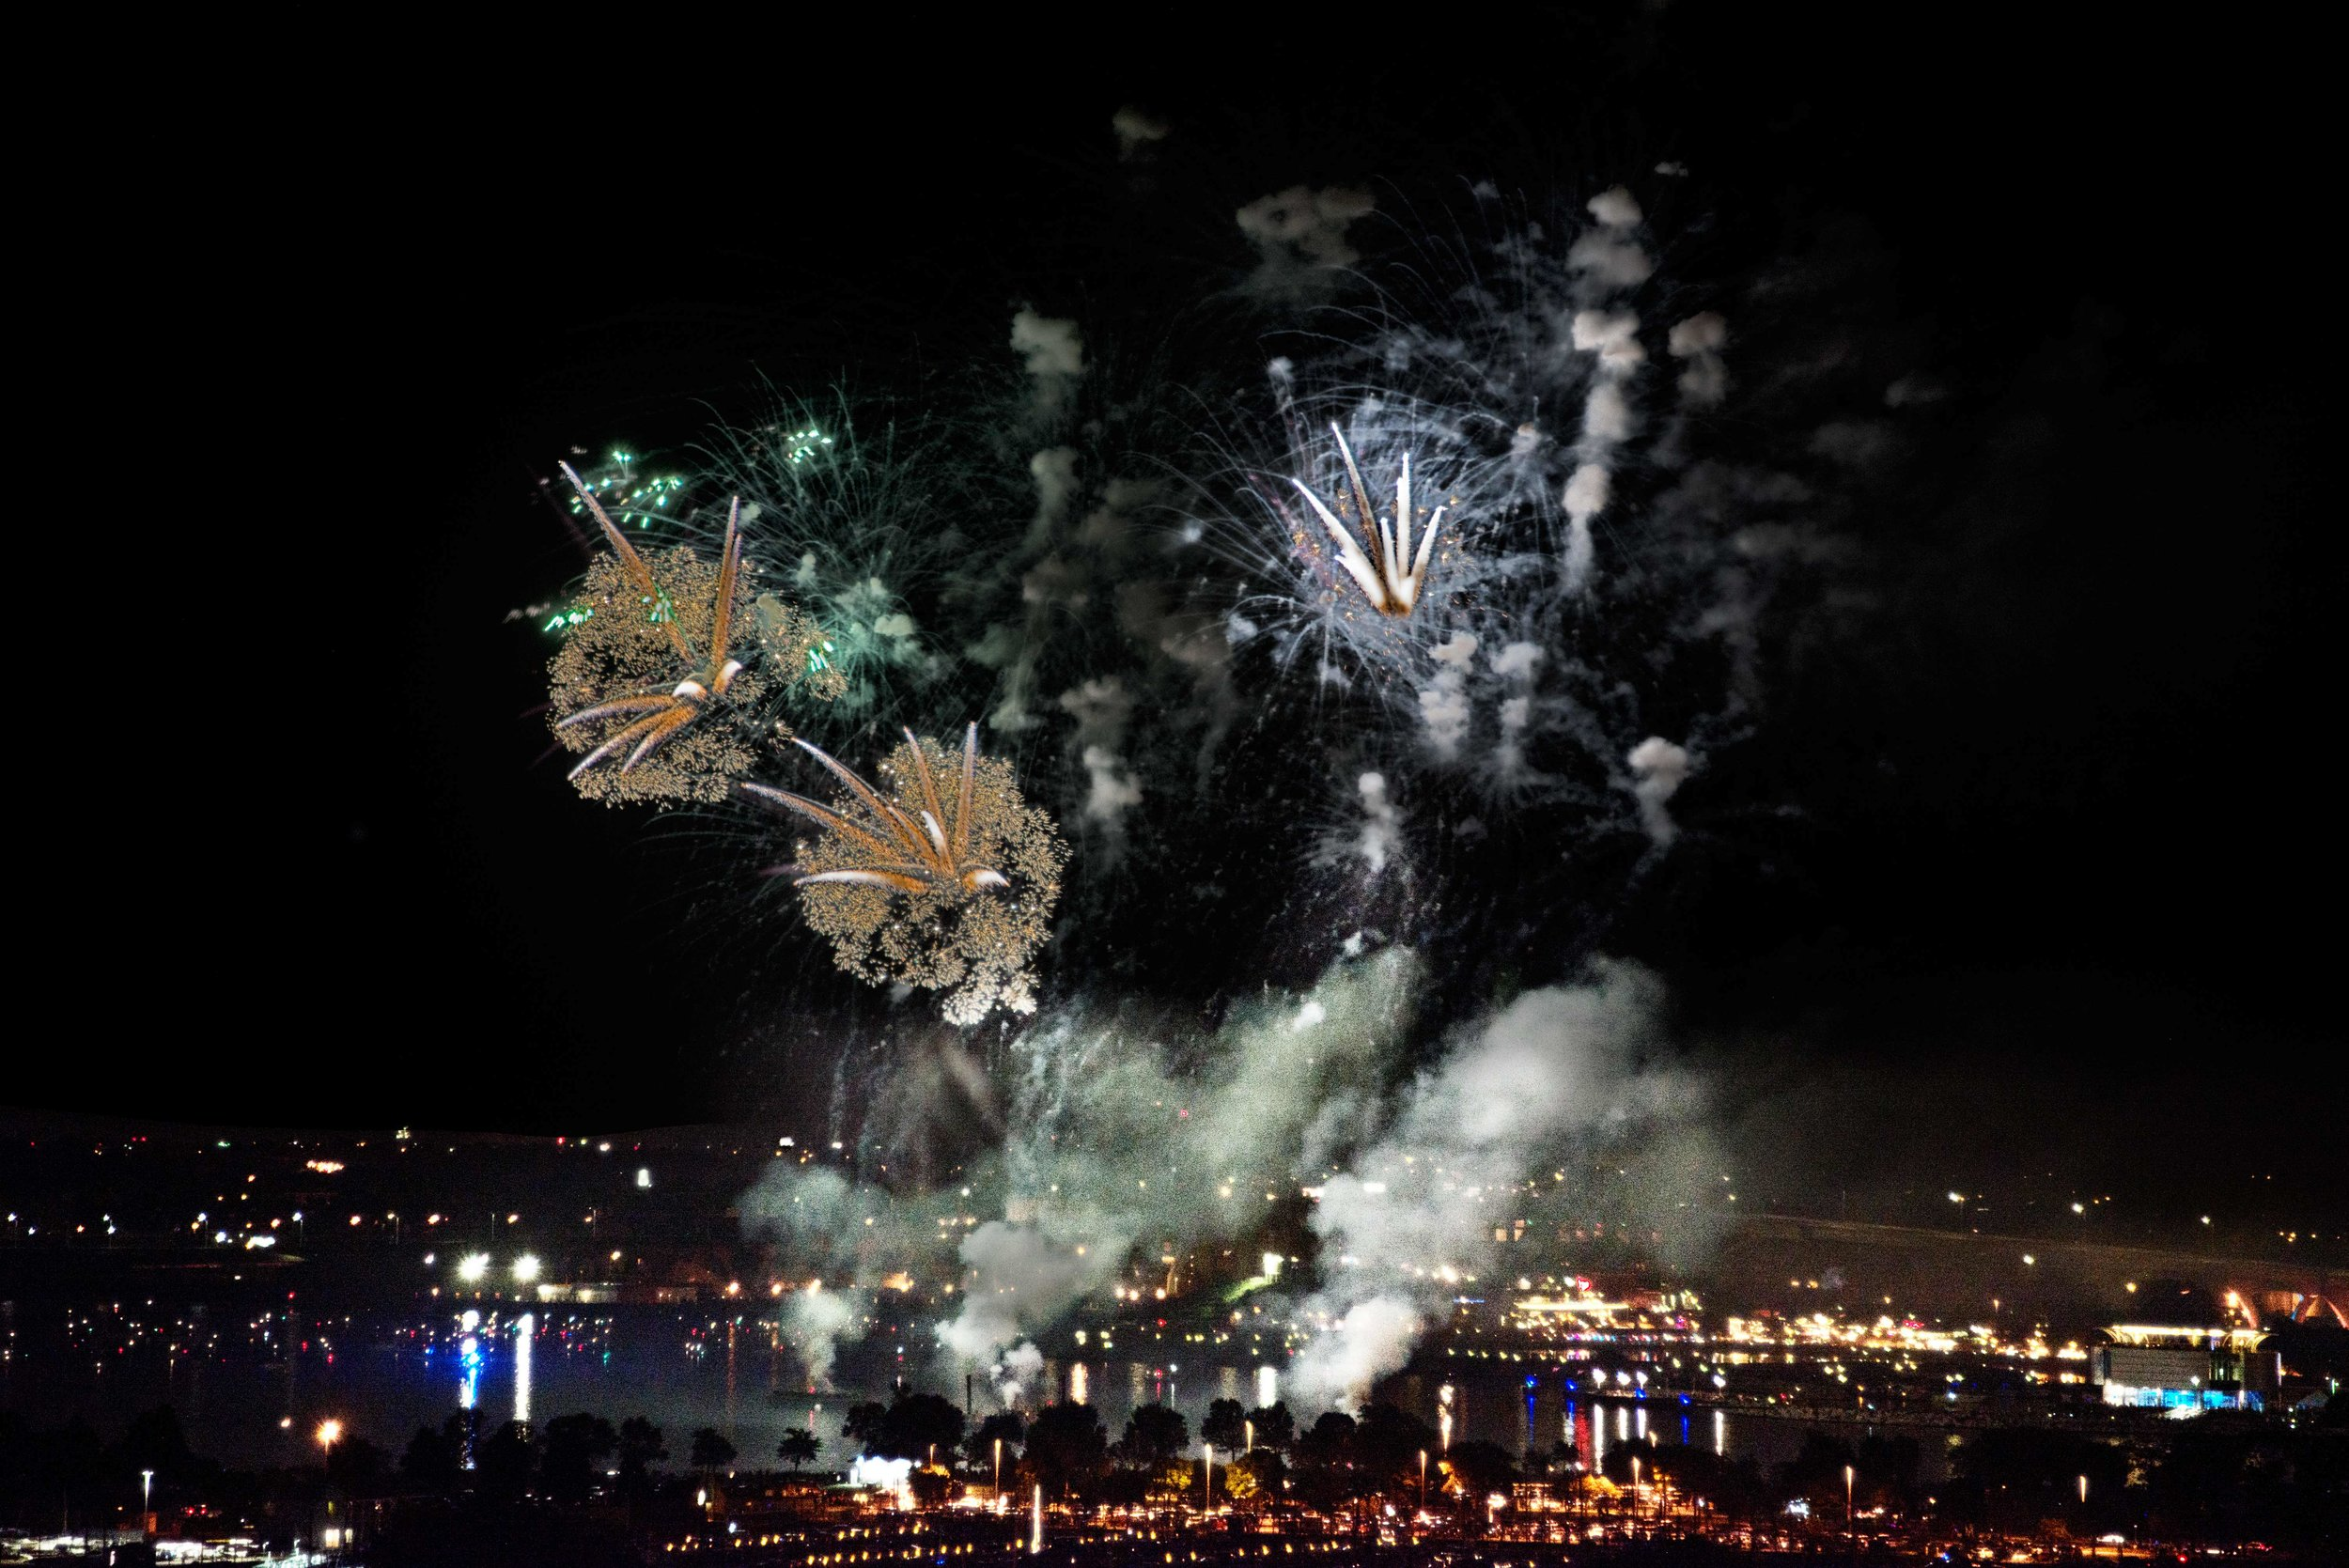 1st place . - Fireworks - Phyllis Bankier